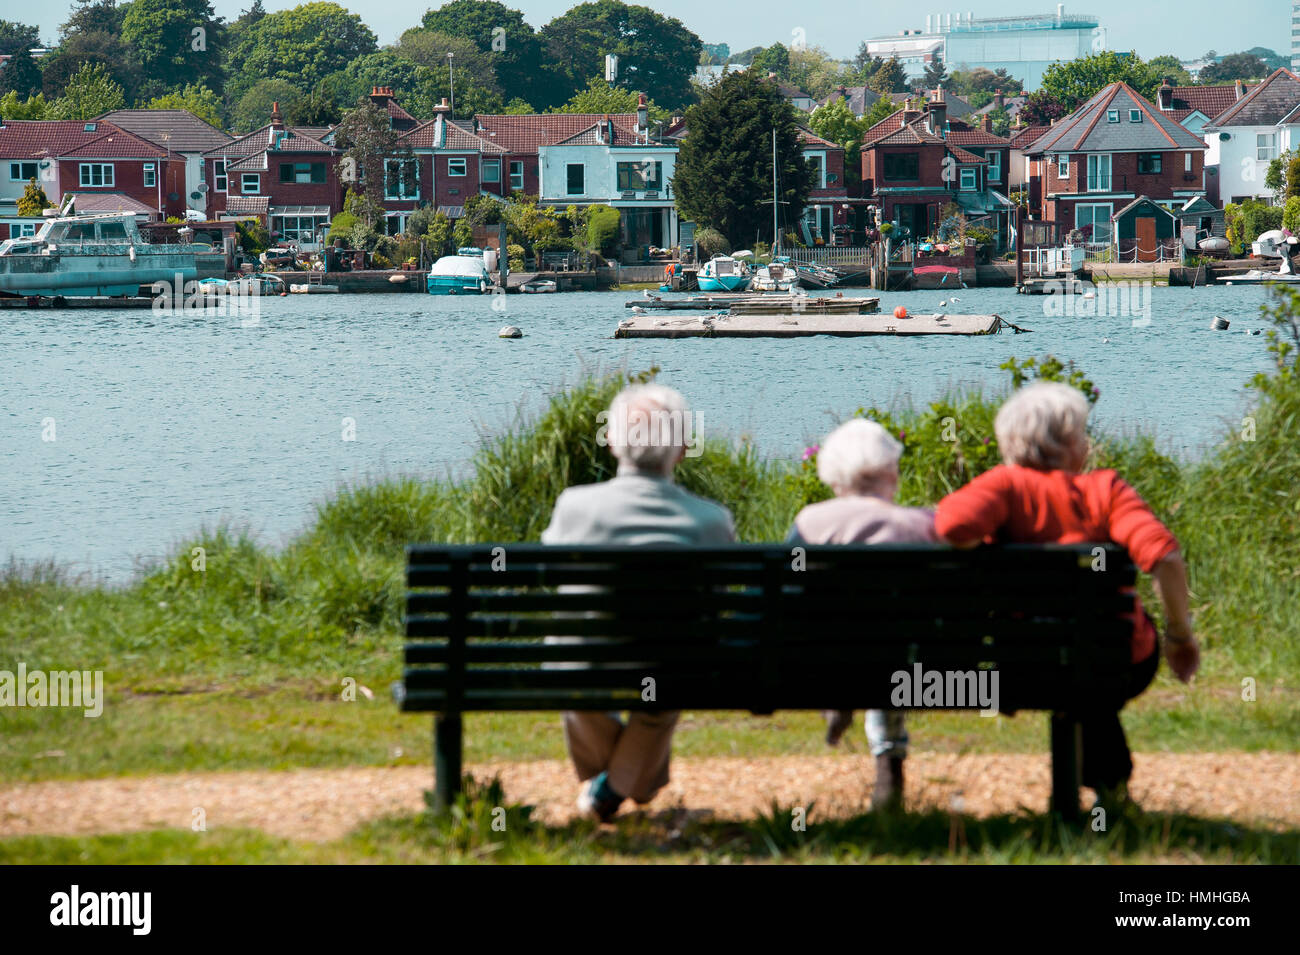 The river Itchen in Hampshire, UK - Stock Image